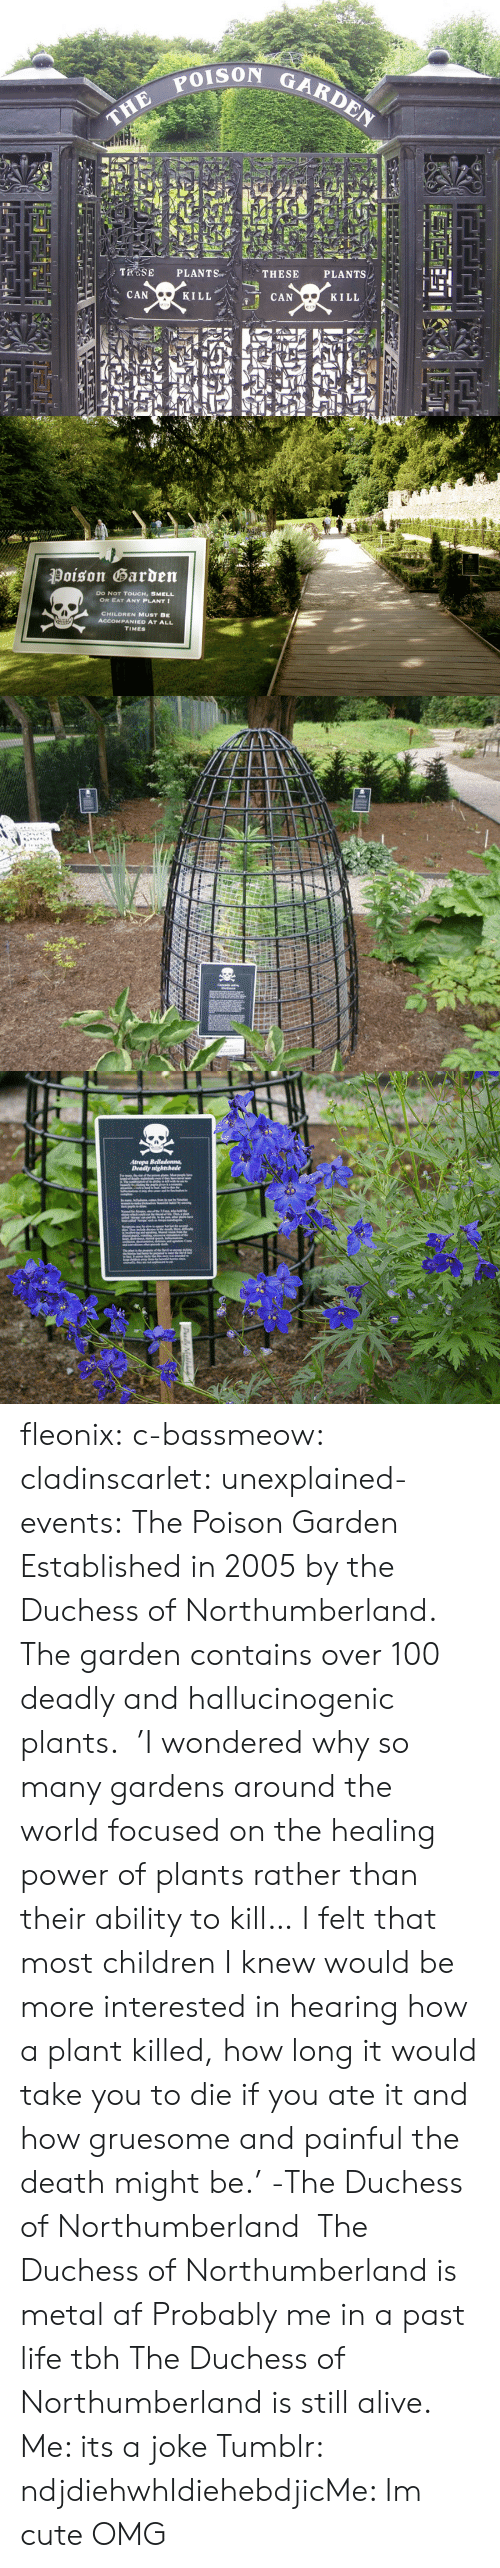 Metal Af: THE POIs  TROSE PLANTS  CAN  THESE PLANTS,  KILL  CAN  KILL   Poison Garden  DO NoT TOUCH, SMELL  OR EAT ANY PLANT  CHILDREN MUST BE  TIMES fleonix:  c-bassmeow:  cladinscarlet:  unexplained-events:  The Poison Garden Established in 2005 by the Duchess of Northumberland. The garden contains over 100 deadly and hallucinogenic plants.   'I wondered why so many gardens around the world focused on the healing power of plants rather than their ability to kill… I felt that most children I knew would be more interested in hearing how a plant killed, how long it would take you to die if you ate it and how gruesome and painful the death might be.'   -The Duchess of Northumberland  The Duchess of Northumberland is metal af   Probably me in a past life tbh  The Duchess of Northumberland is still alive.  Me: its a joke Tumblr: ndjdiehwhIdiehebdjicMe: Im cute OMG